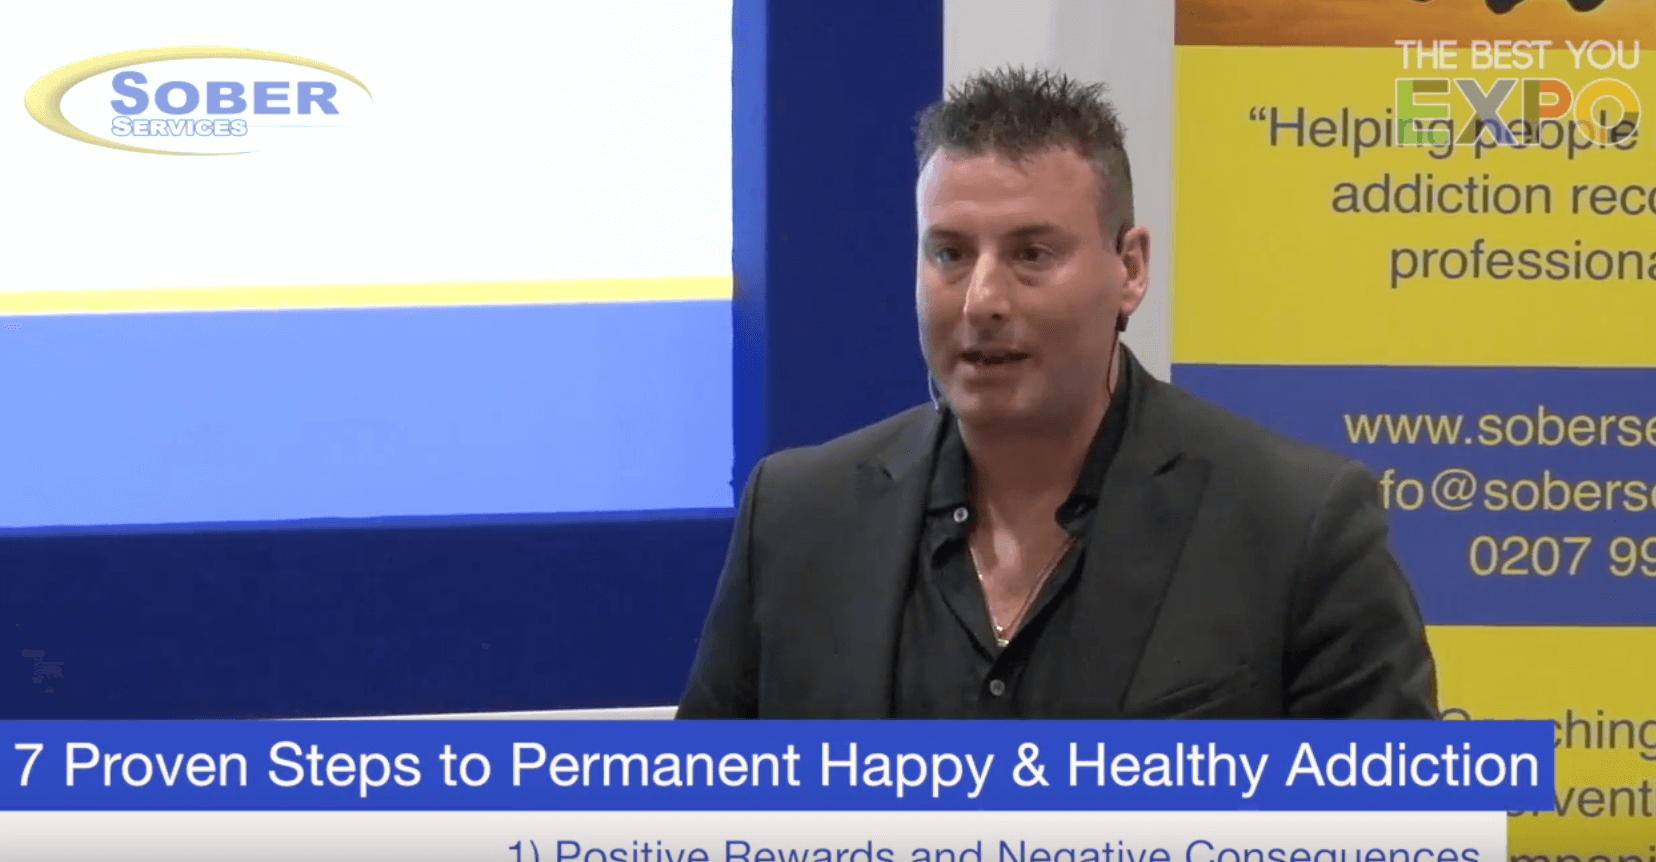 7 Proven Steps to Permanent Happy & Health Addiction